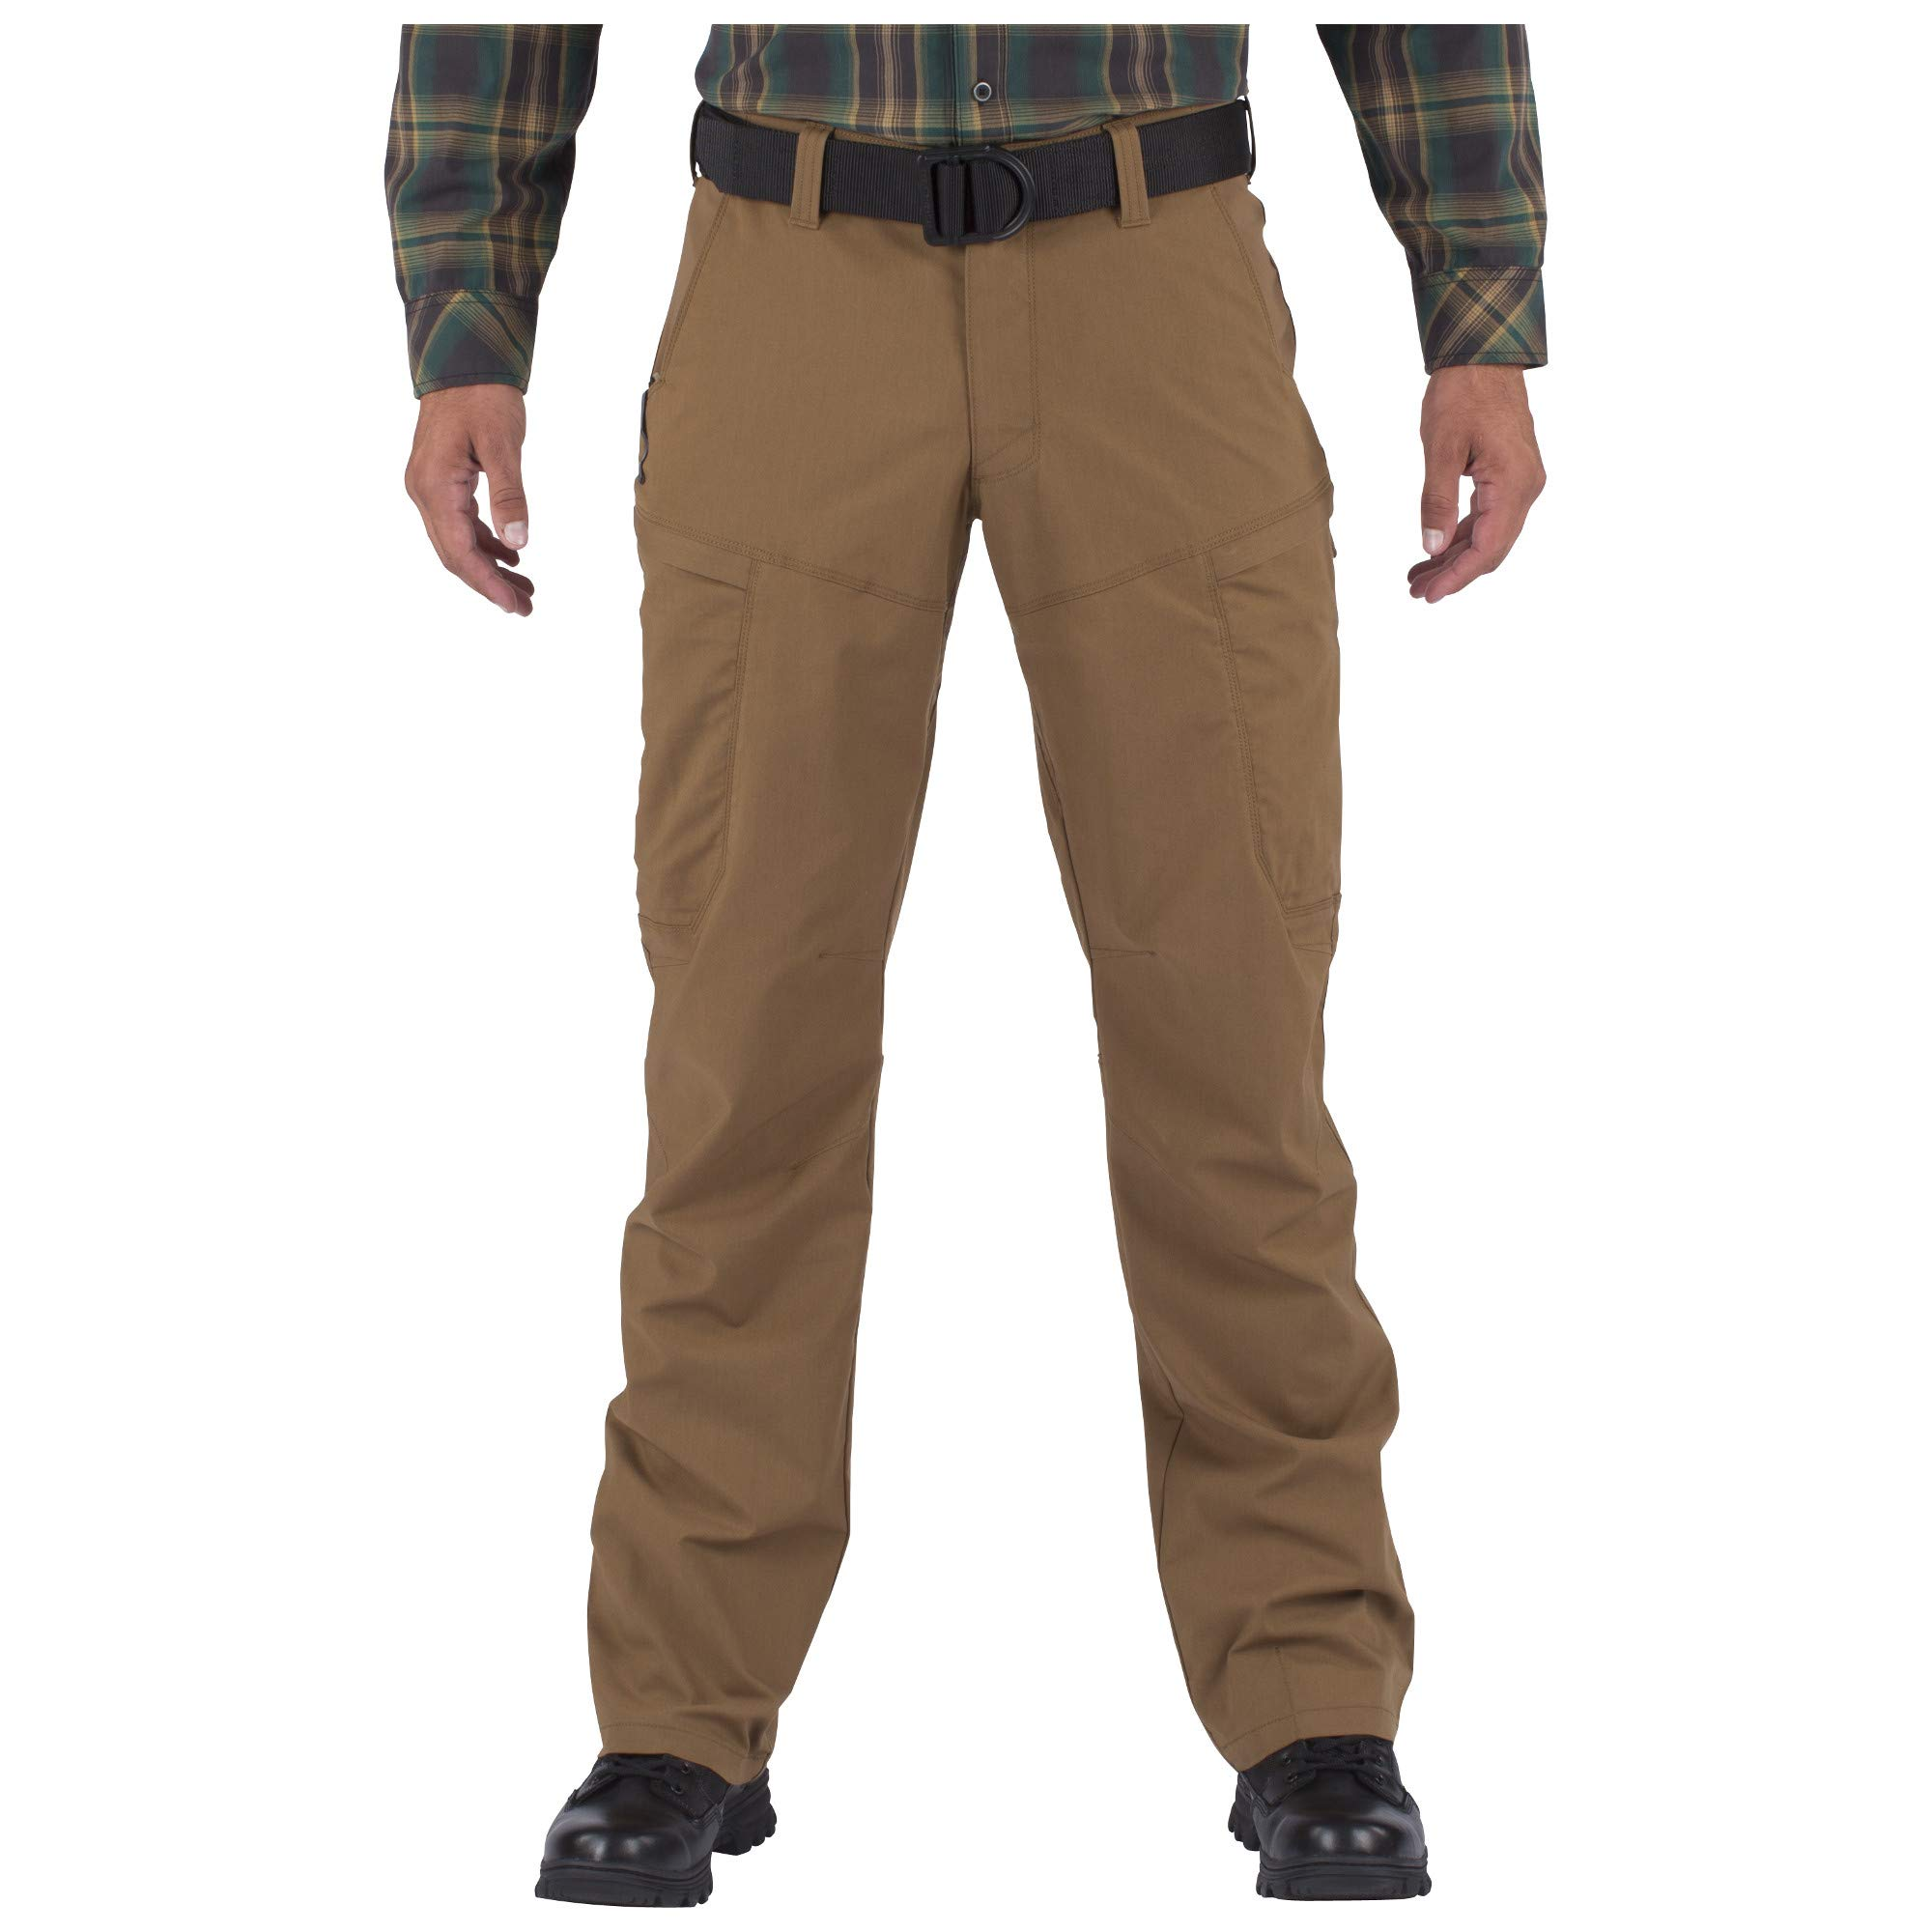 5.11 Men's APEX EDC Stealth Cargo Pocket Tactical Pant Style 74434, Battle Brown, 28W x 34L by 5.11